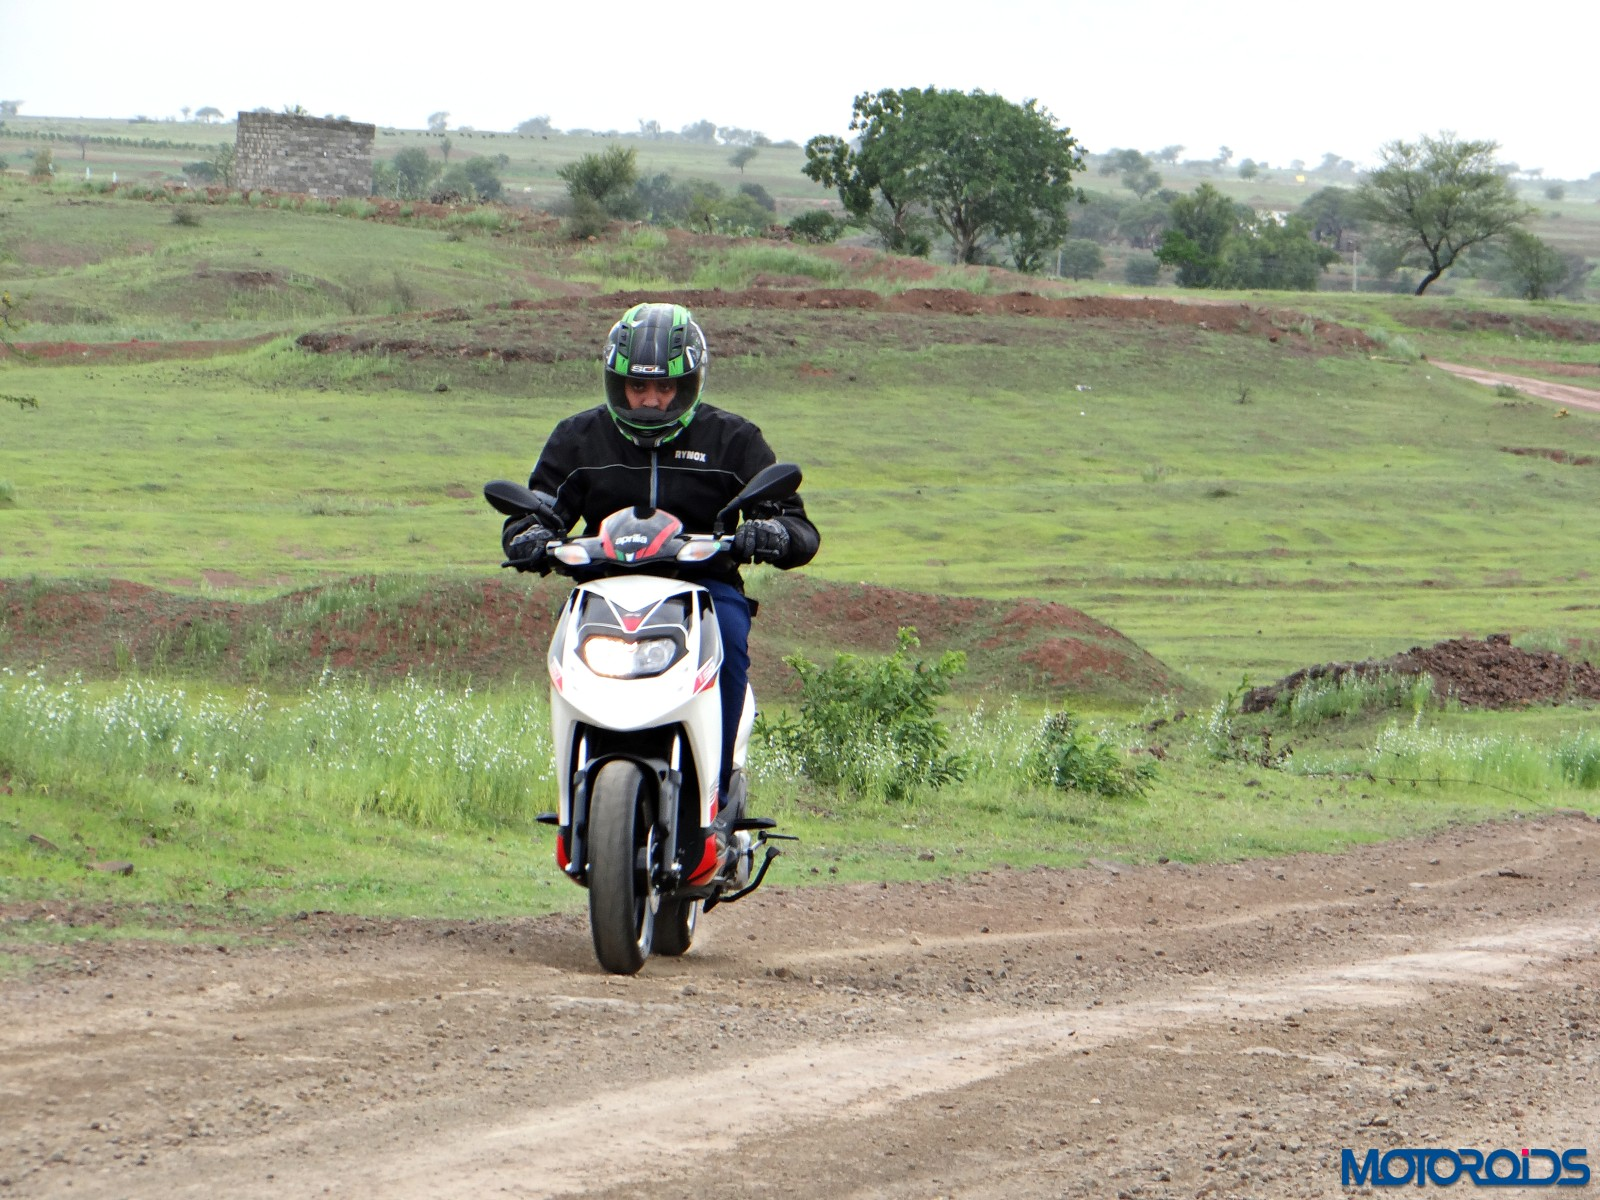 Aprilia SR 150 Review - Action Shots (1)